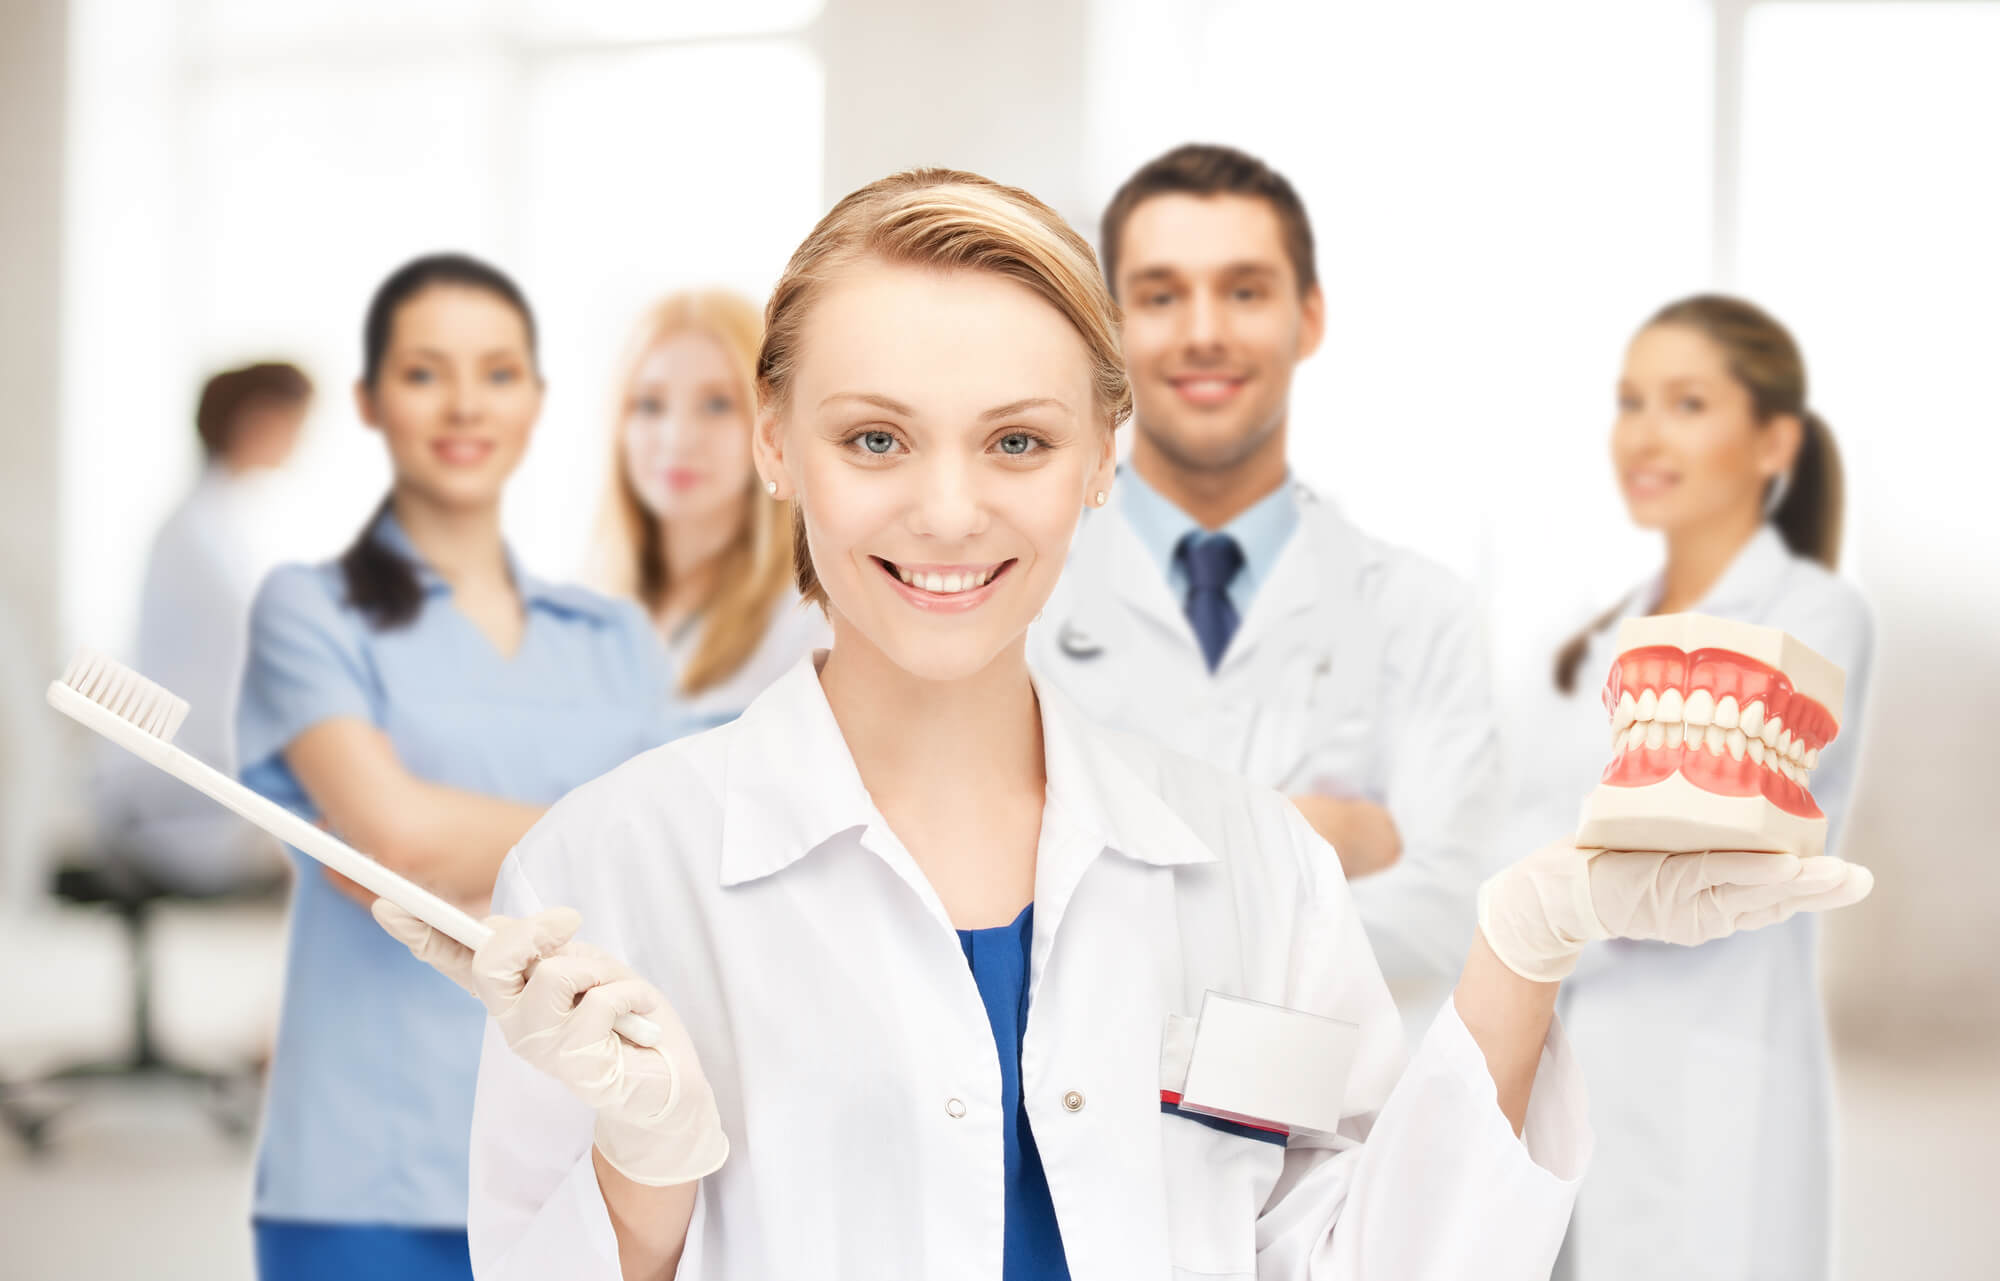 dental health professionals searching for Periodontist job openings